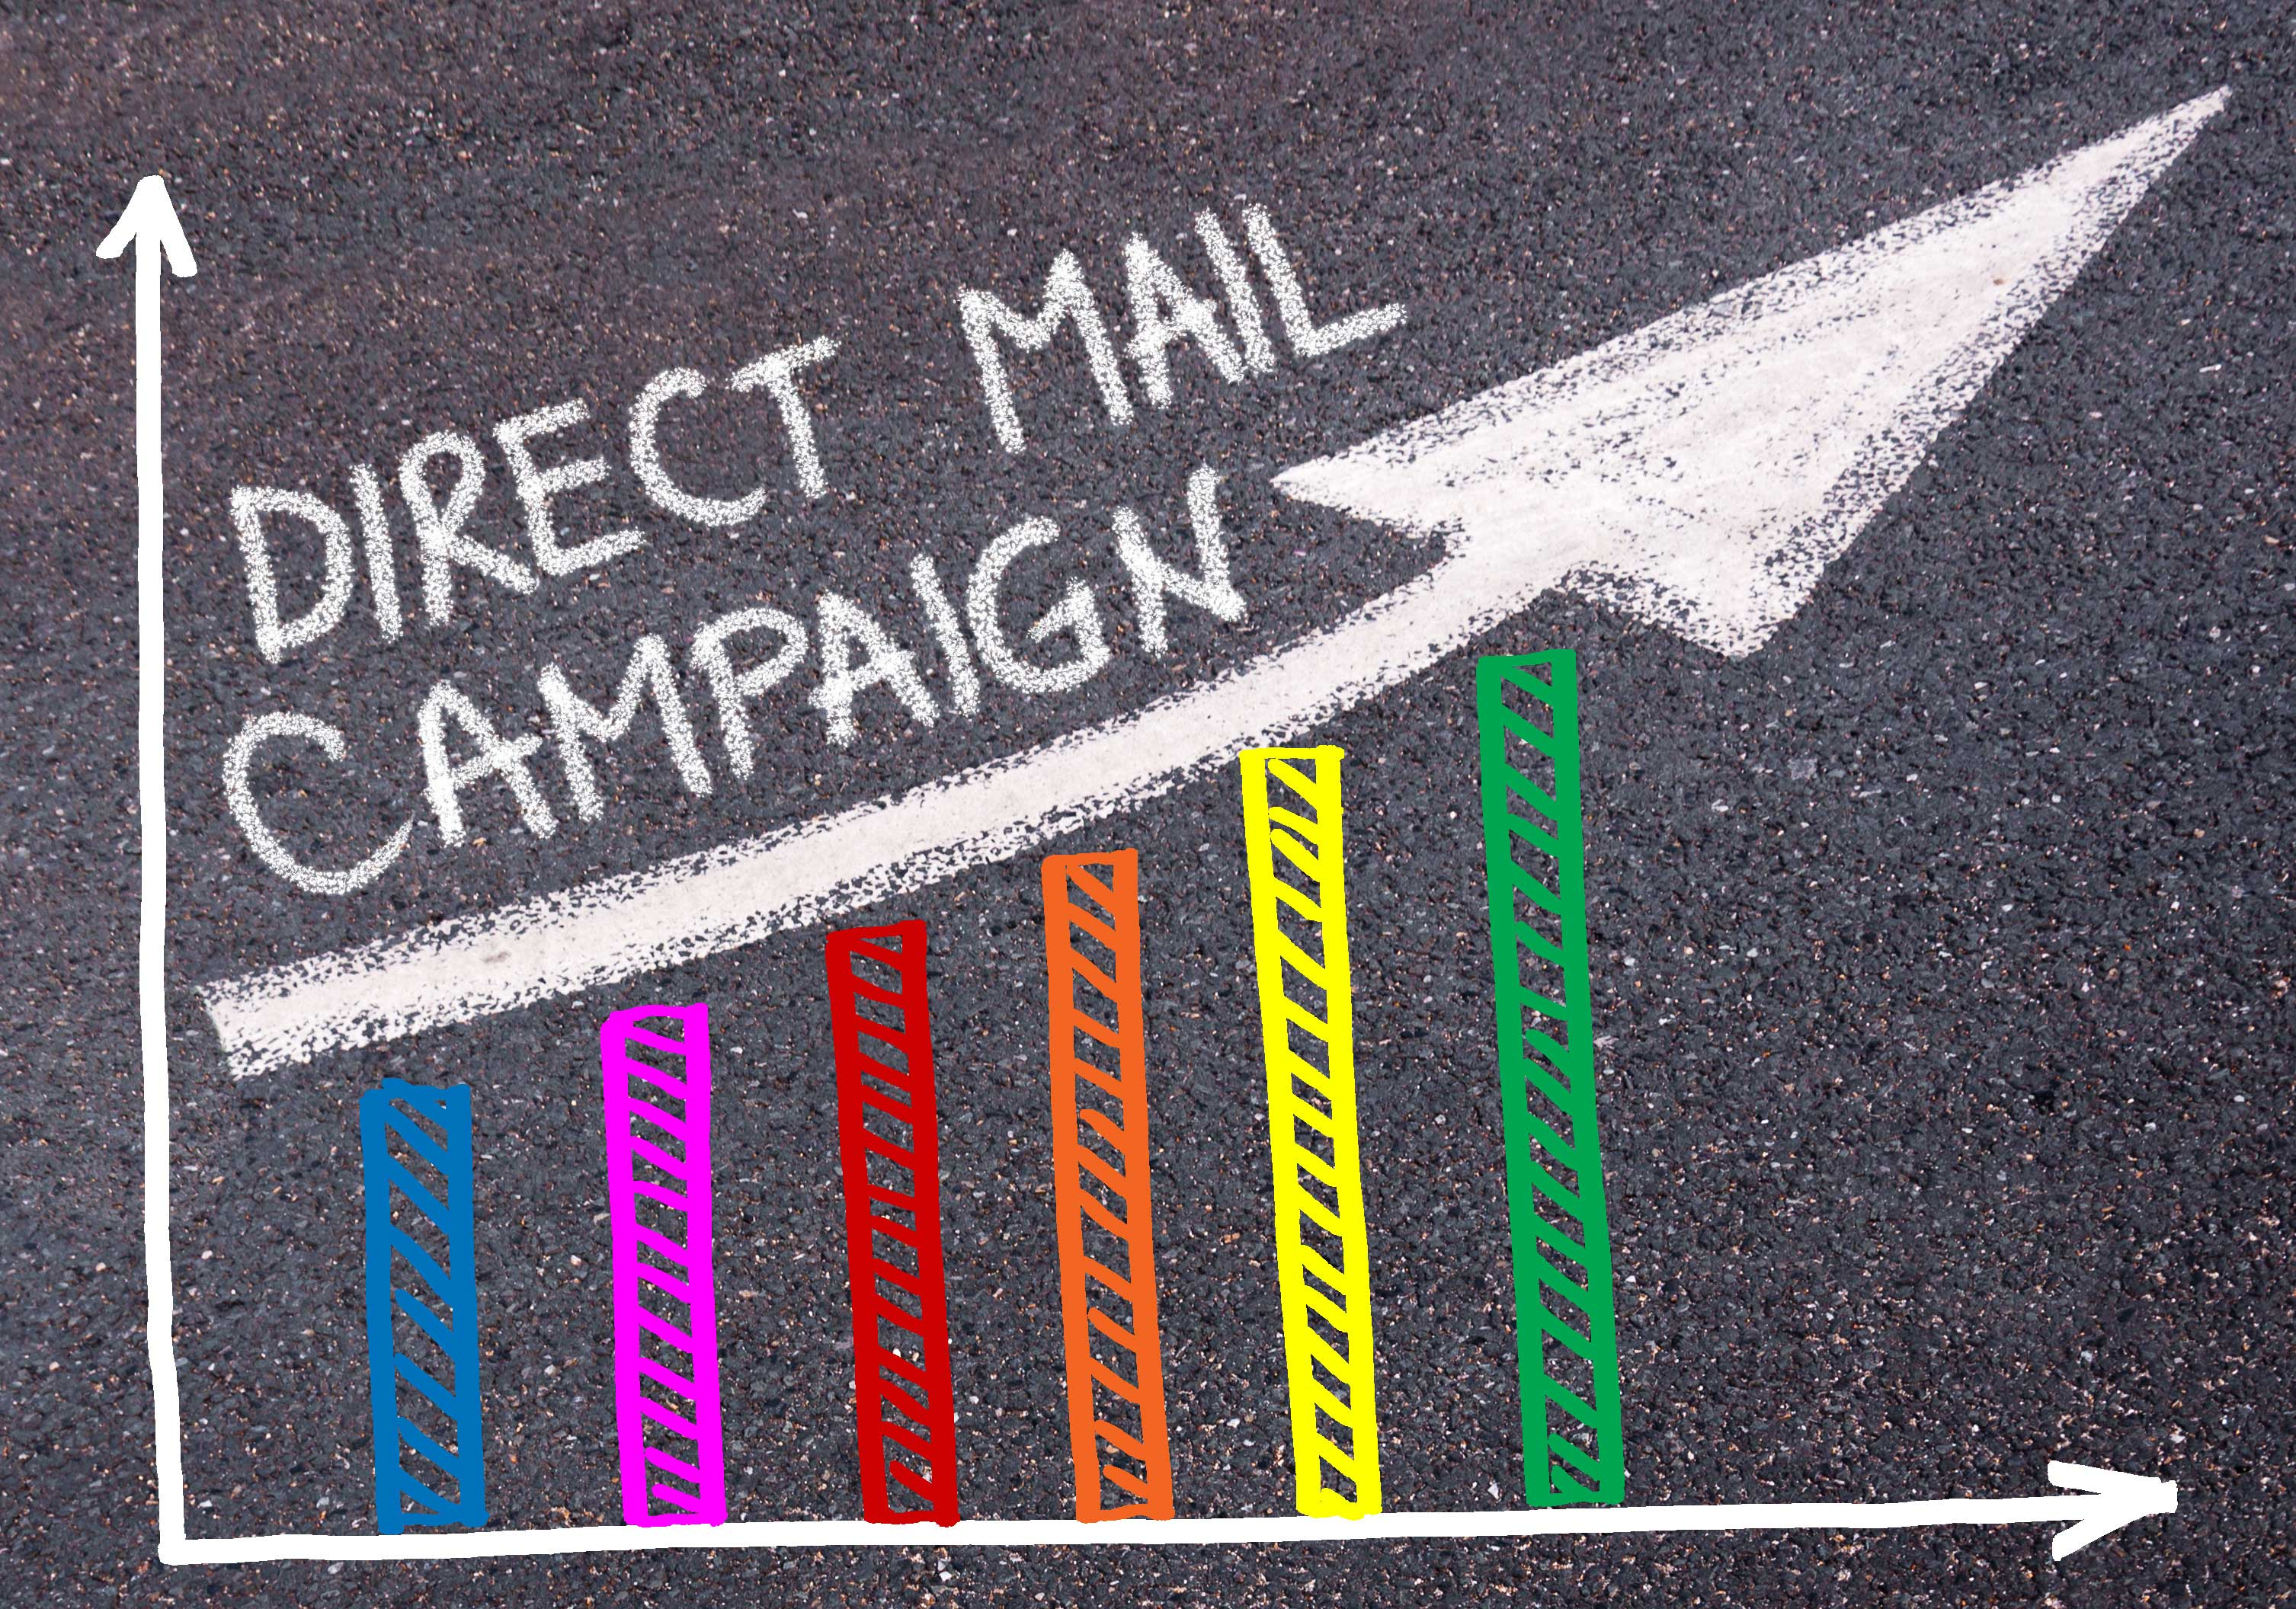 & Every Door Direct Mail Marketing (EDDM) Cedar City Utah